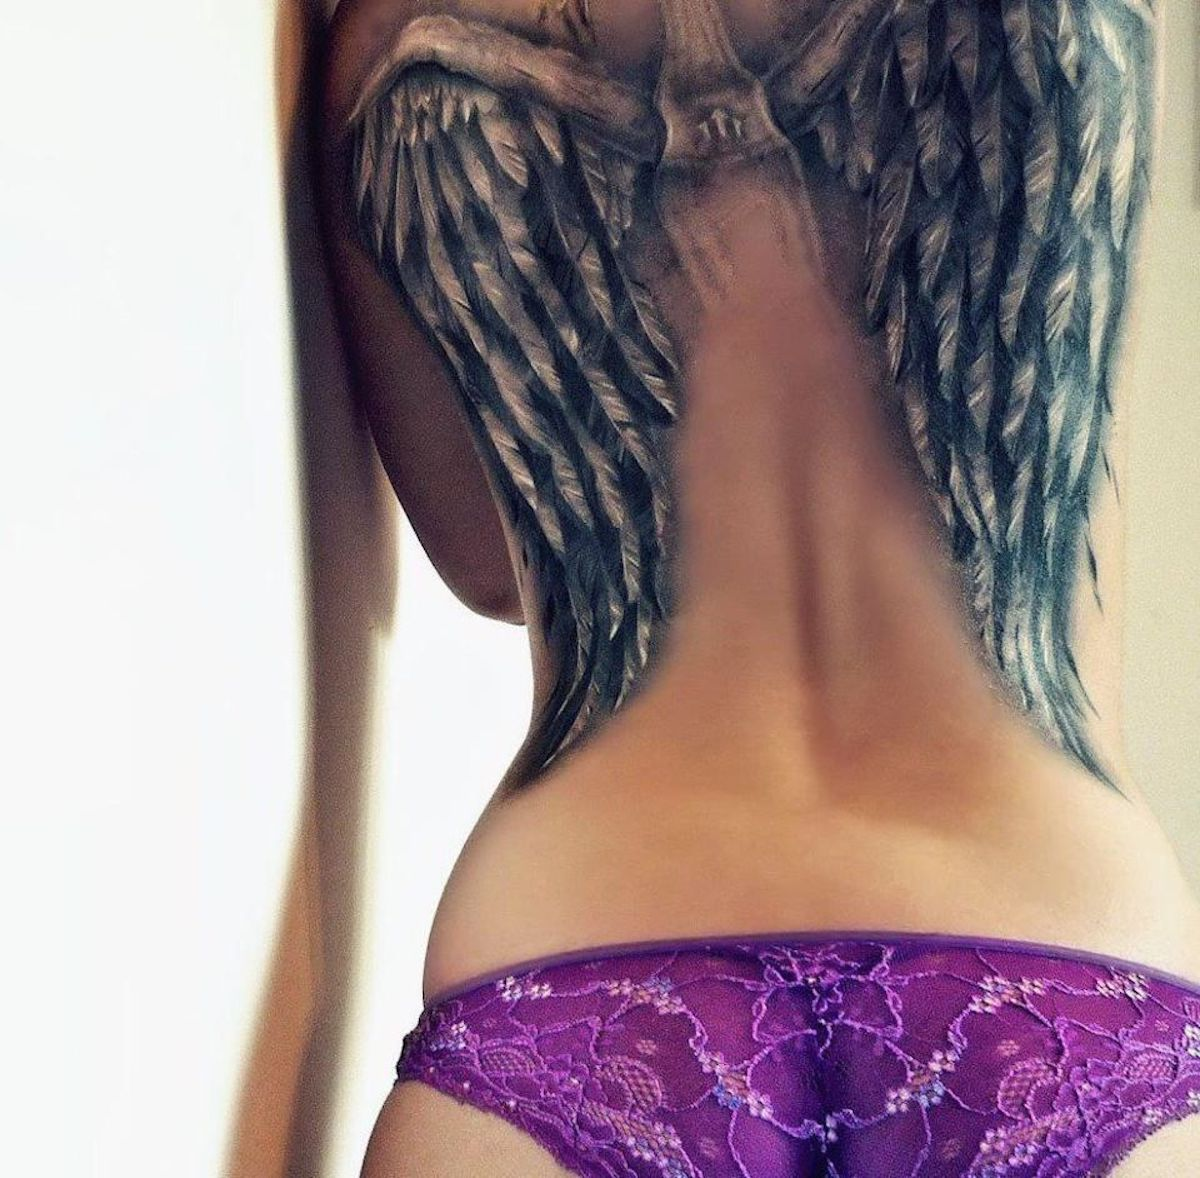 Angel's wings on the woman's back